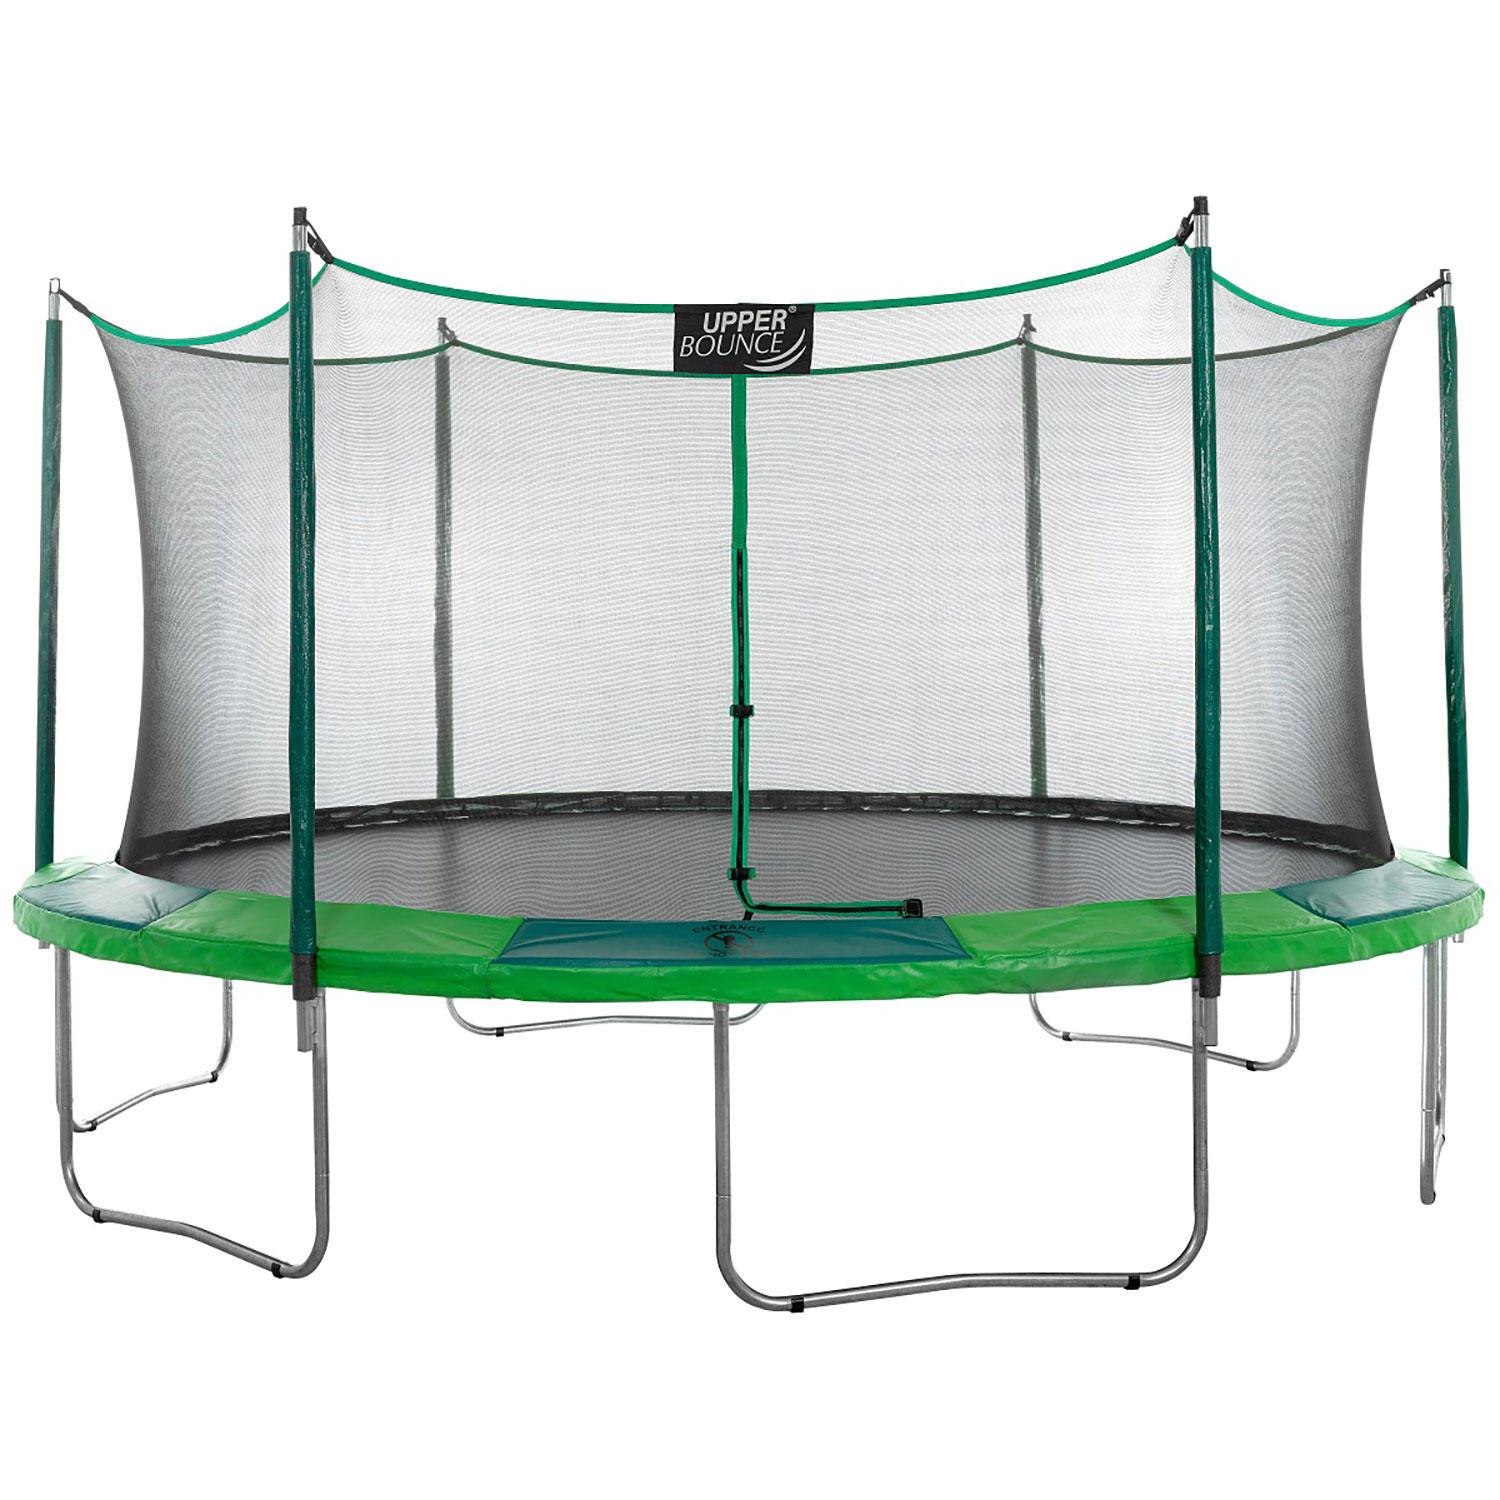 Upper Bounce UB03EC-15E 15' Trampoline & Enclosure Set